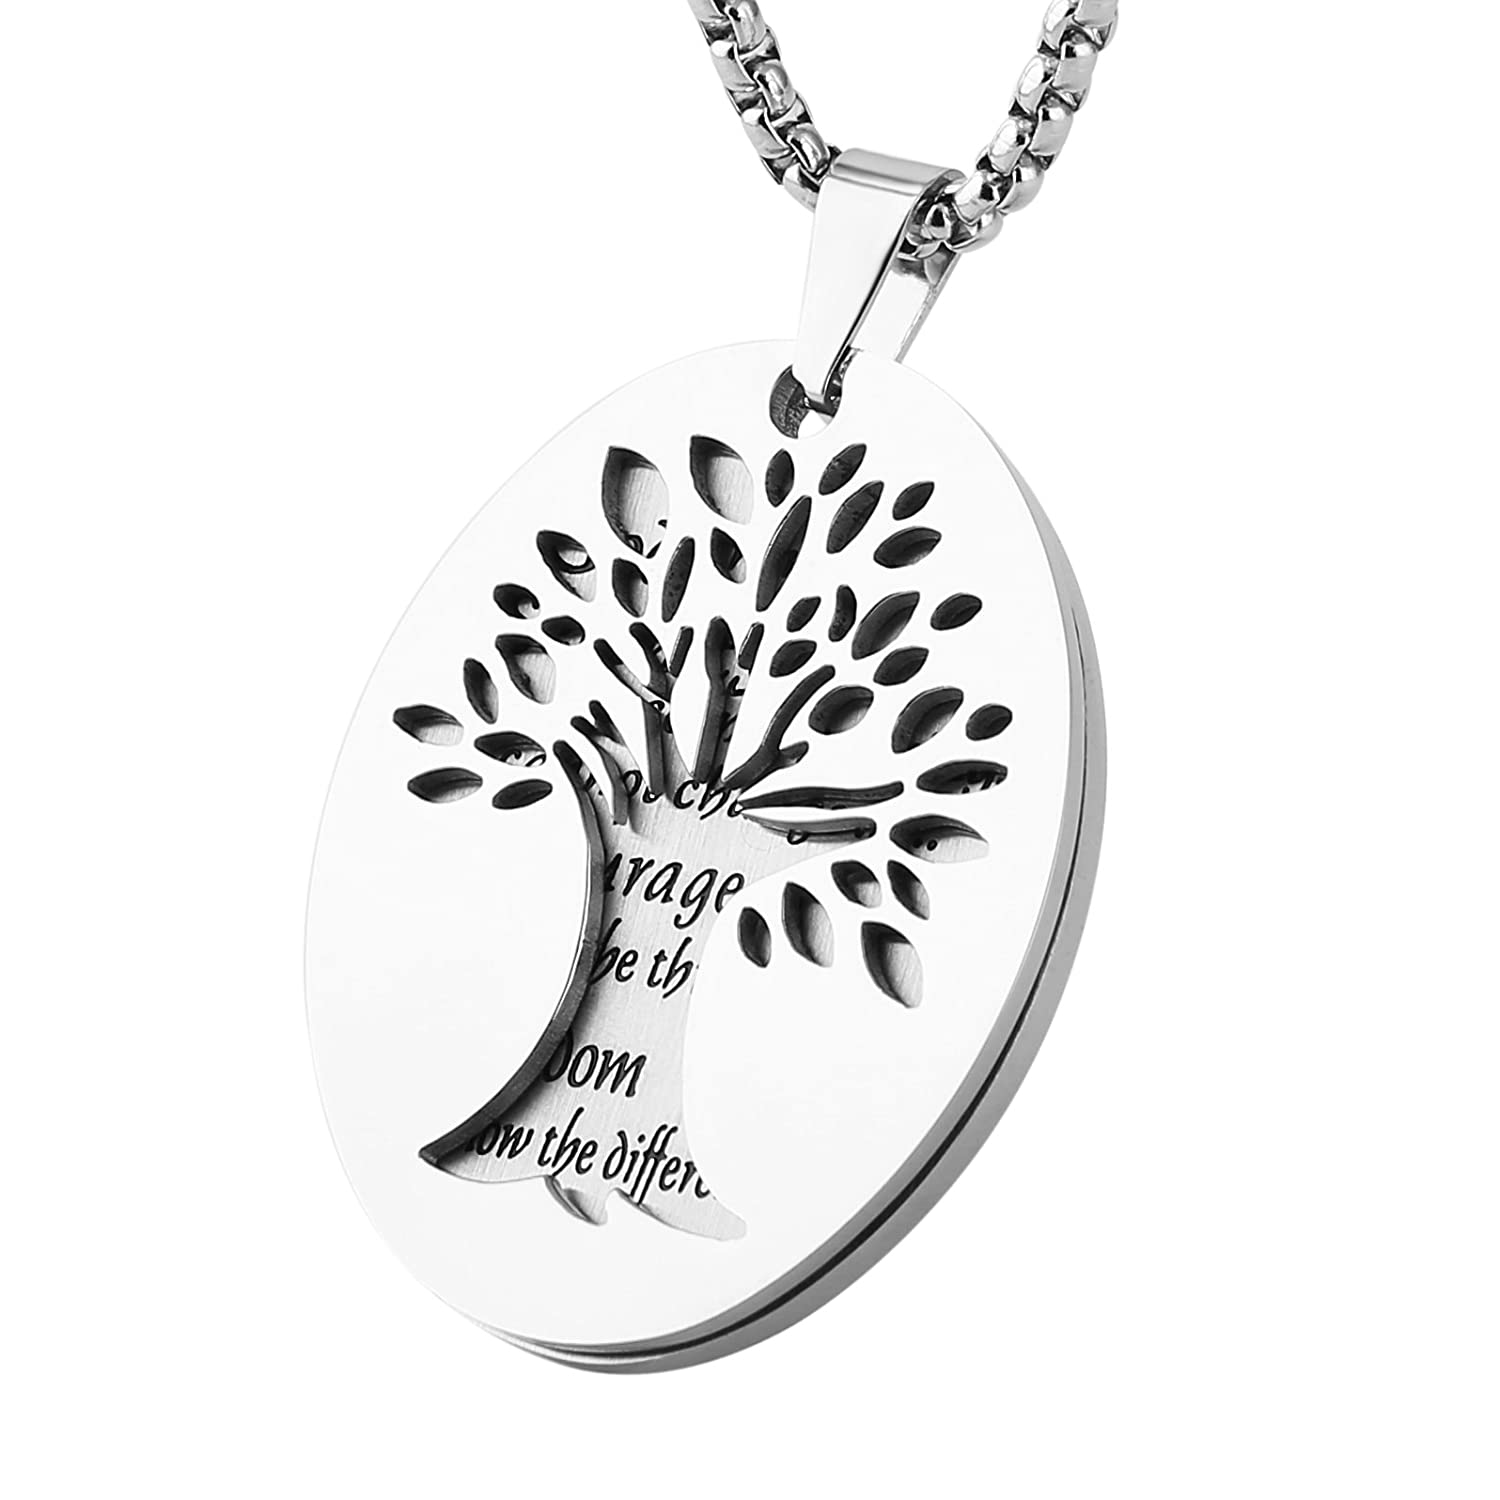 HZMAN Two Piece Serenity Prayer Stainless Steel Pendant Necklace with Tree of Life Cut Out